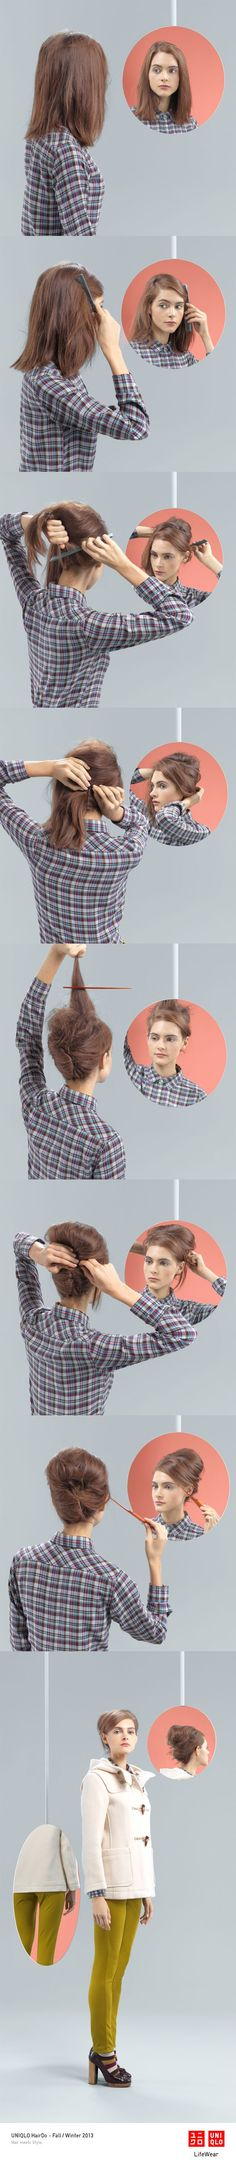 The Side Beehive Updo Hair Hairstyle Diy Uniqlo Hairdo 5 Minute Hairstyles, Up Hairstyles, Pretty Hairstyles, Classic Hairstyles, Coiffure Hair, Great Hair, Vintage Hairstyles, Hair Today, Hair Dos